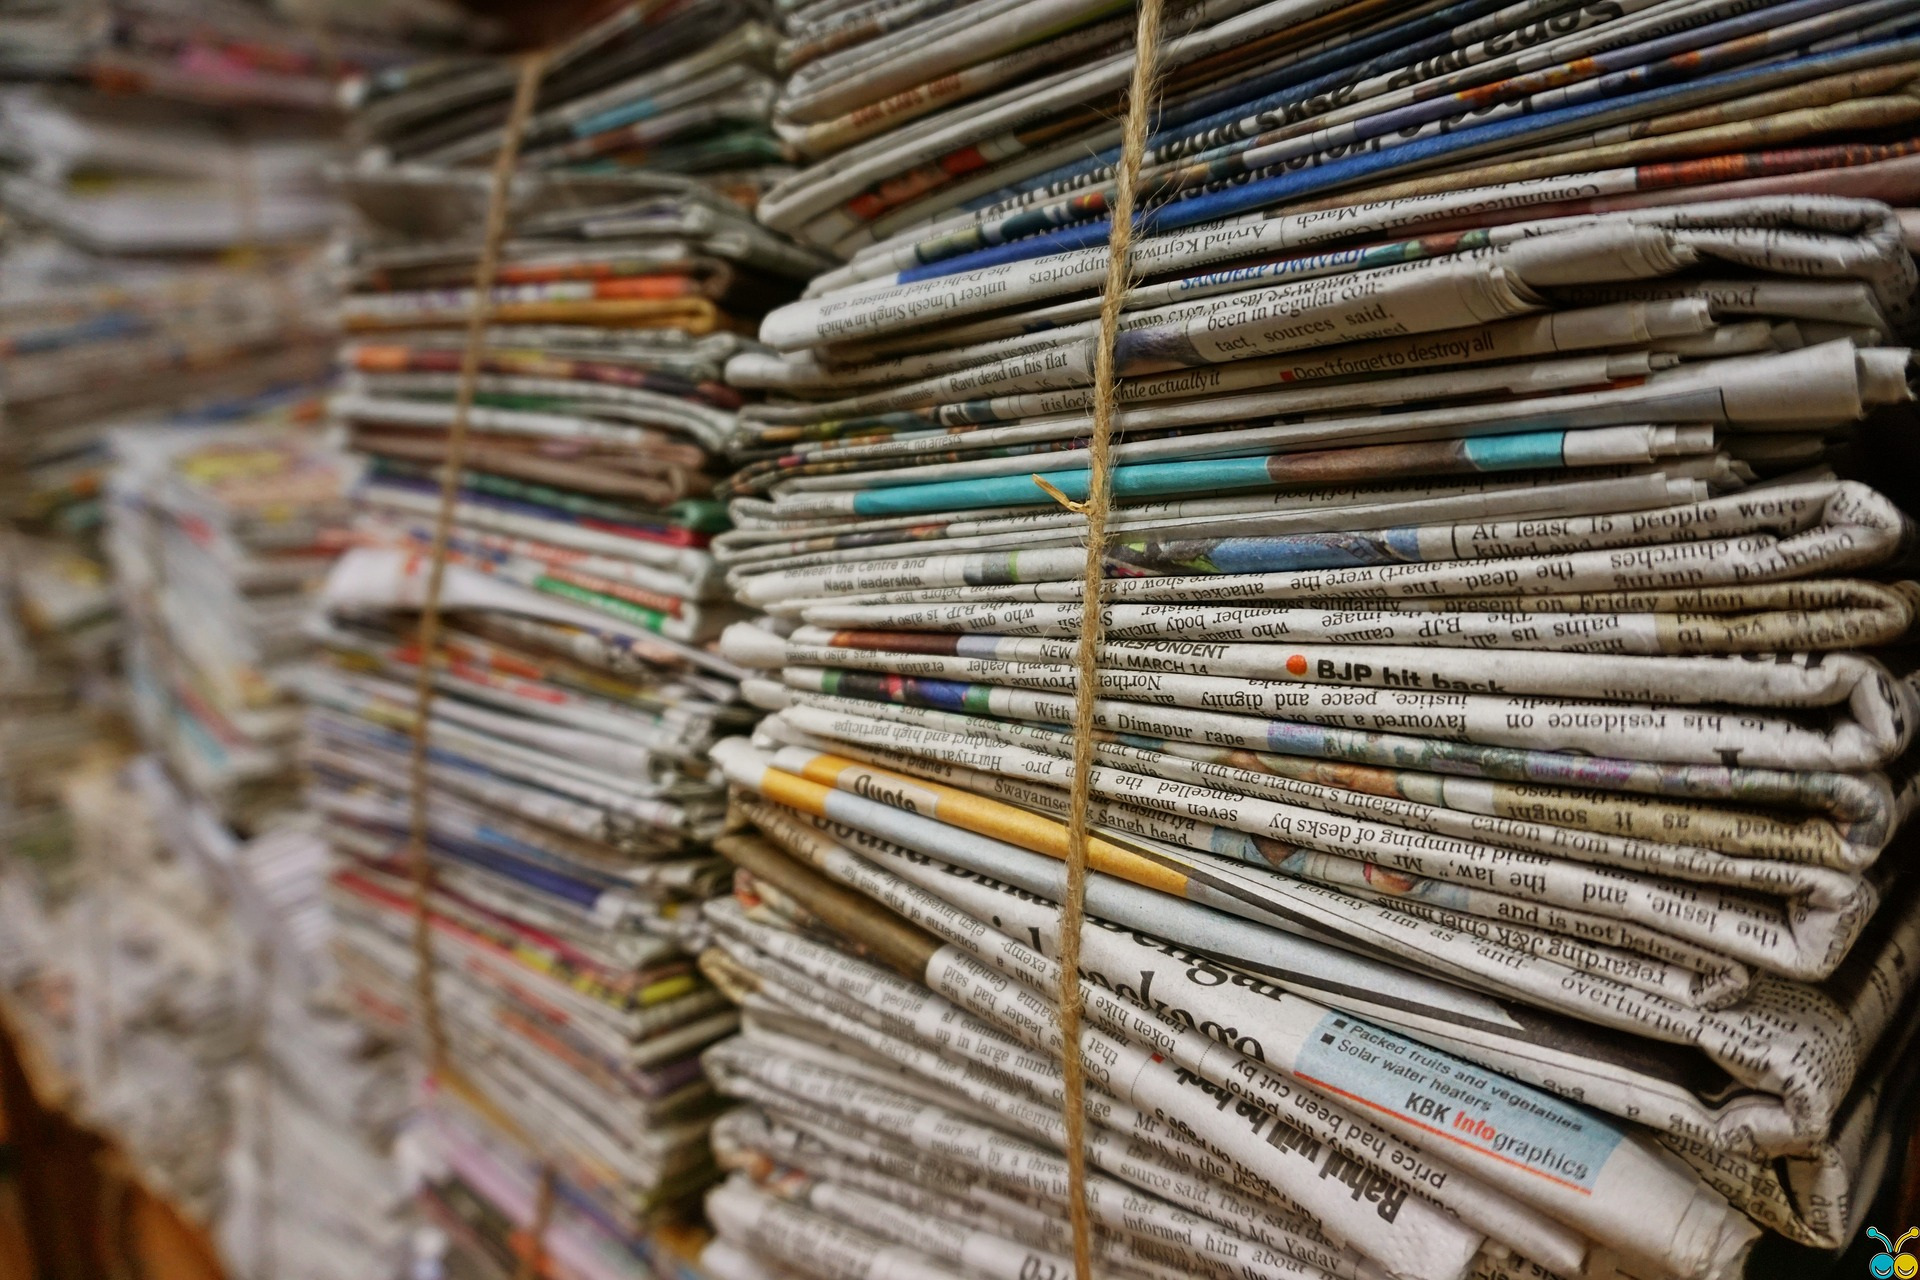 Survey: Hungarians Only Read News Presented to Them, Without Fact-Checking post's picture